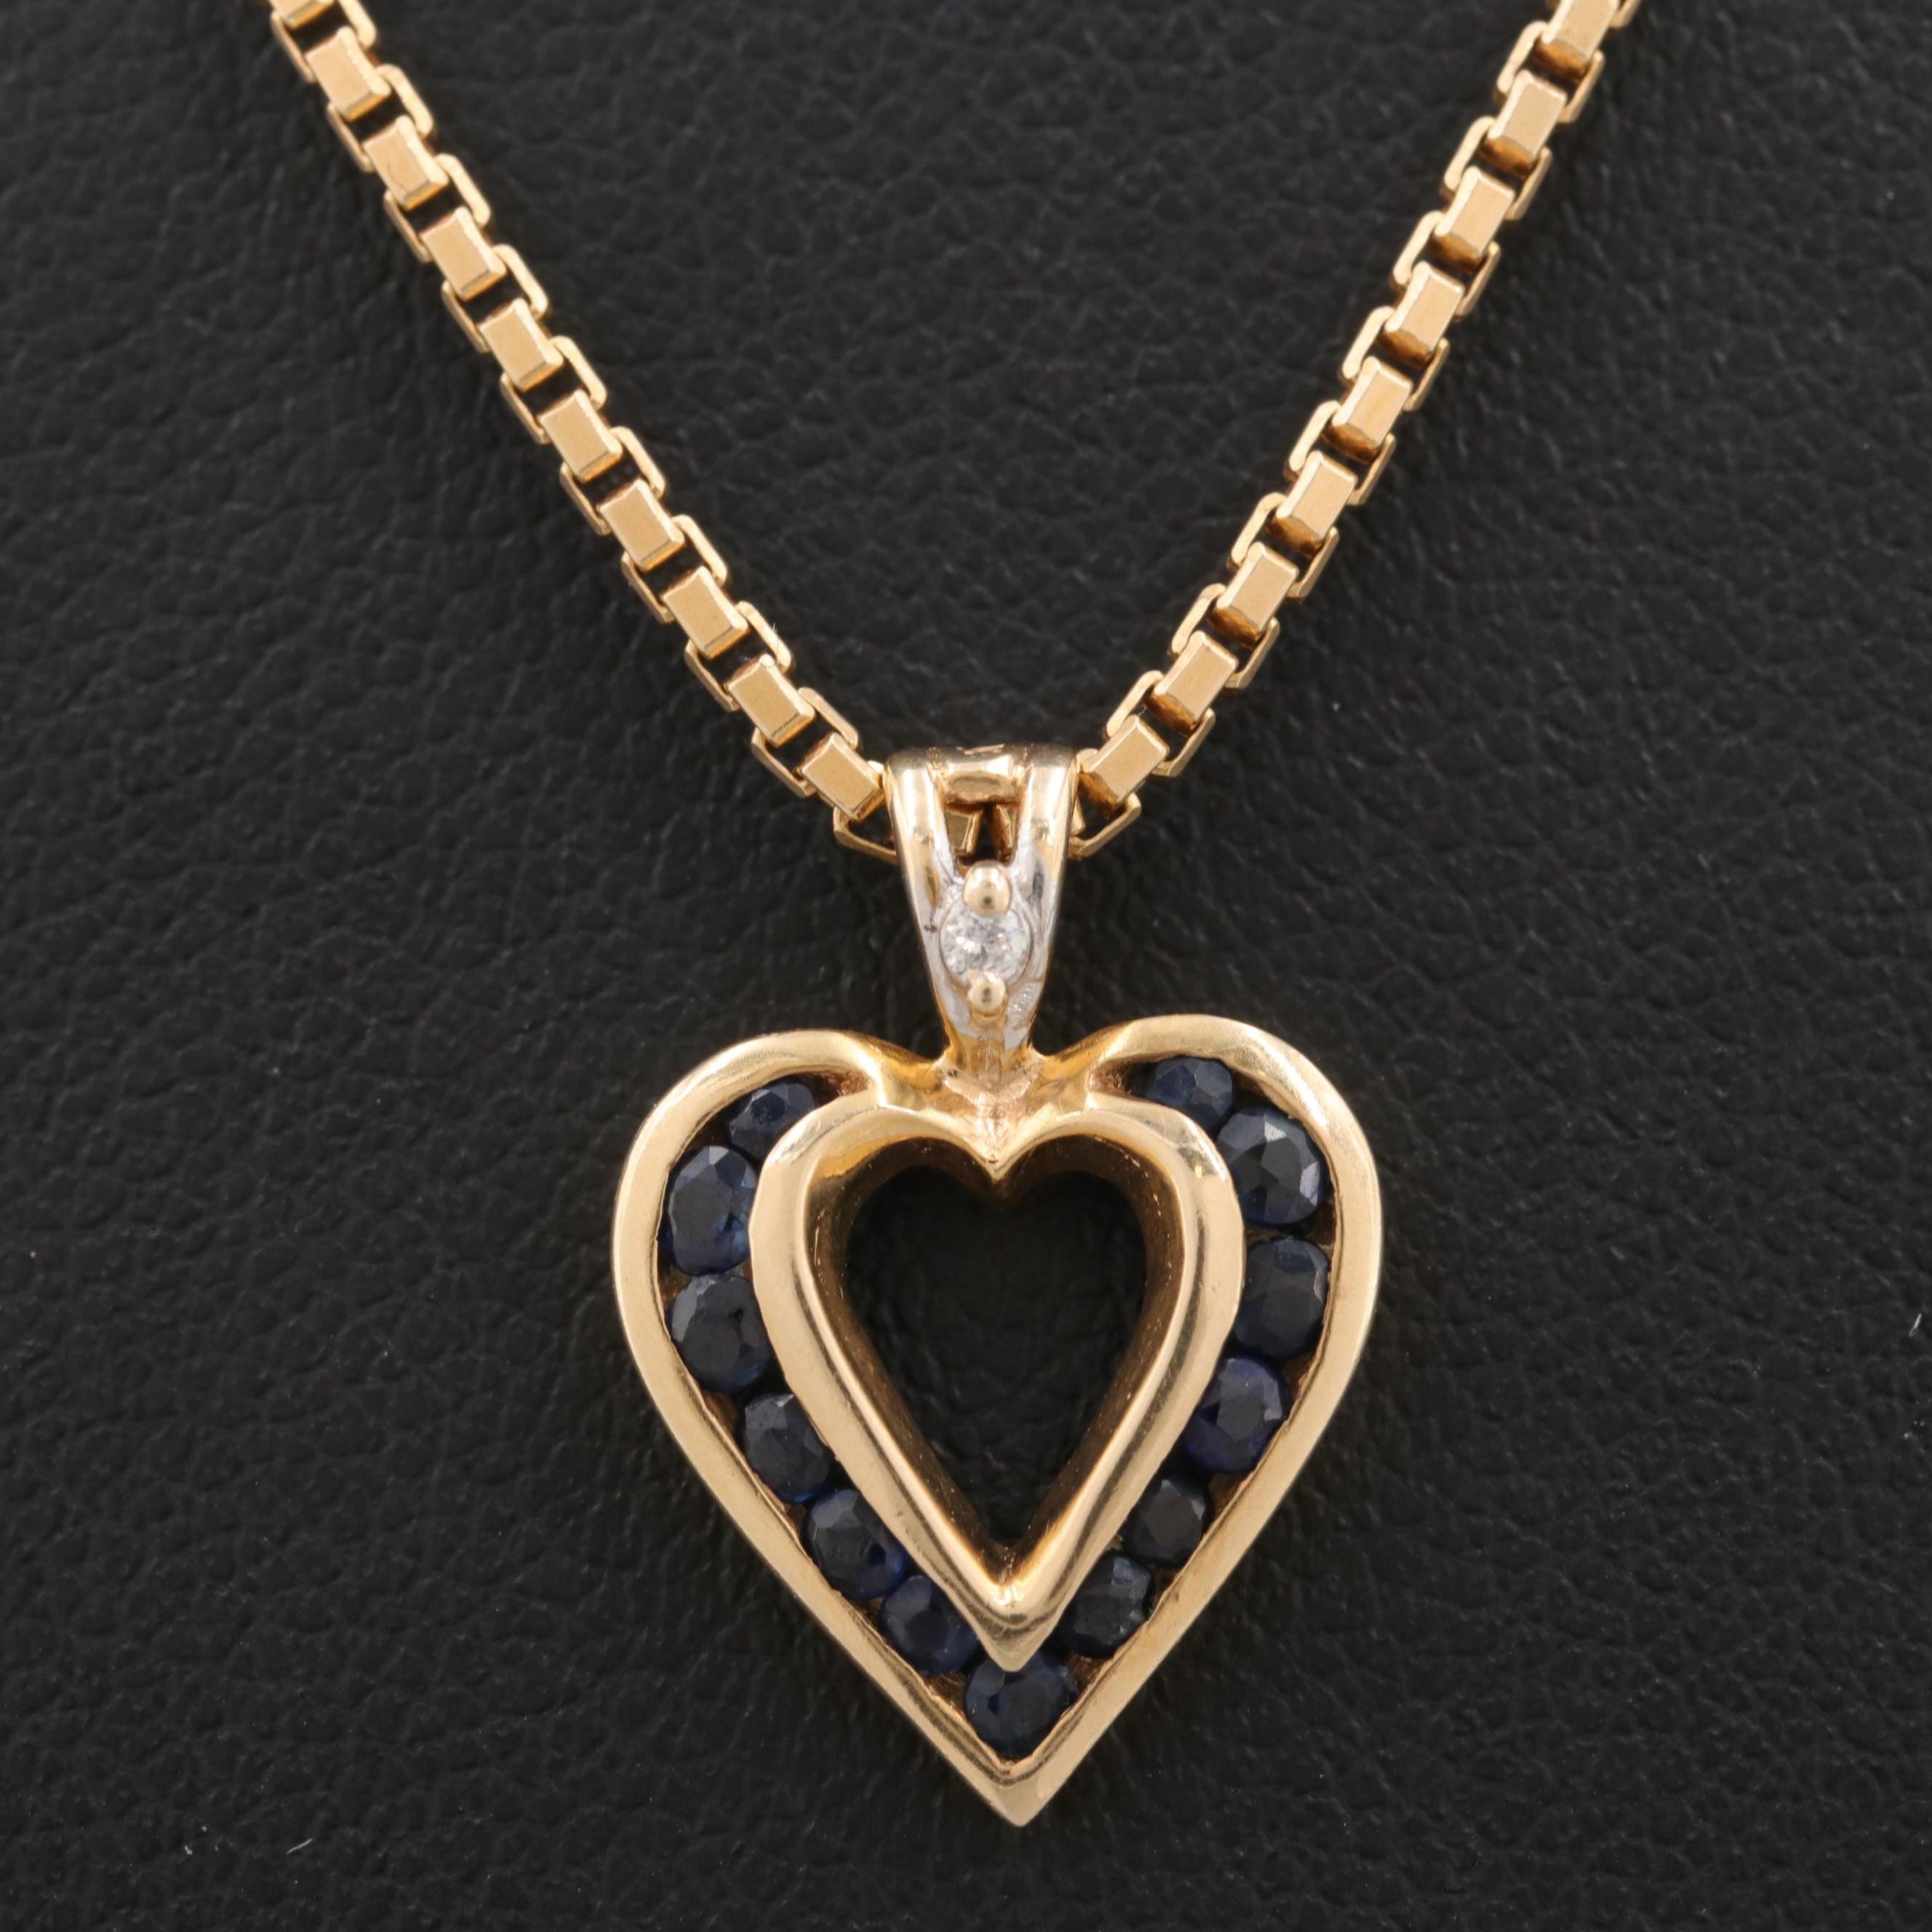 14K Yellow Gold Sapphire and Diamond Heart Pendant Necklace